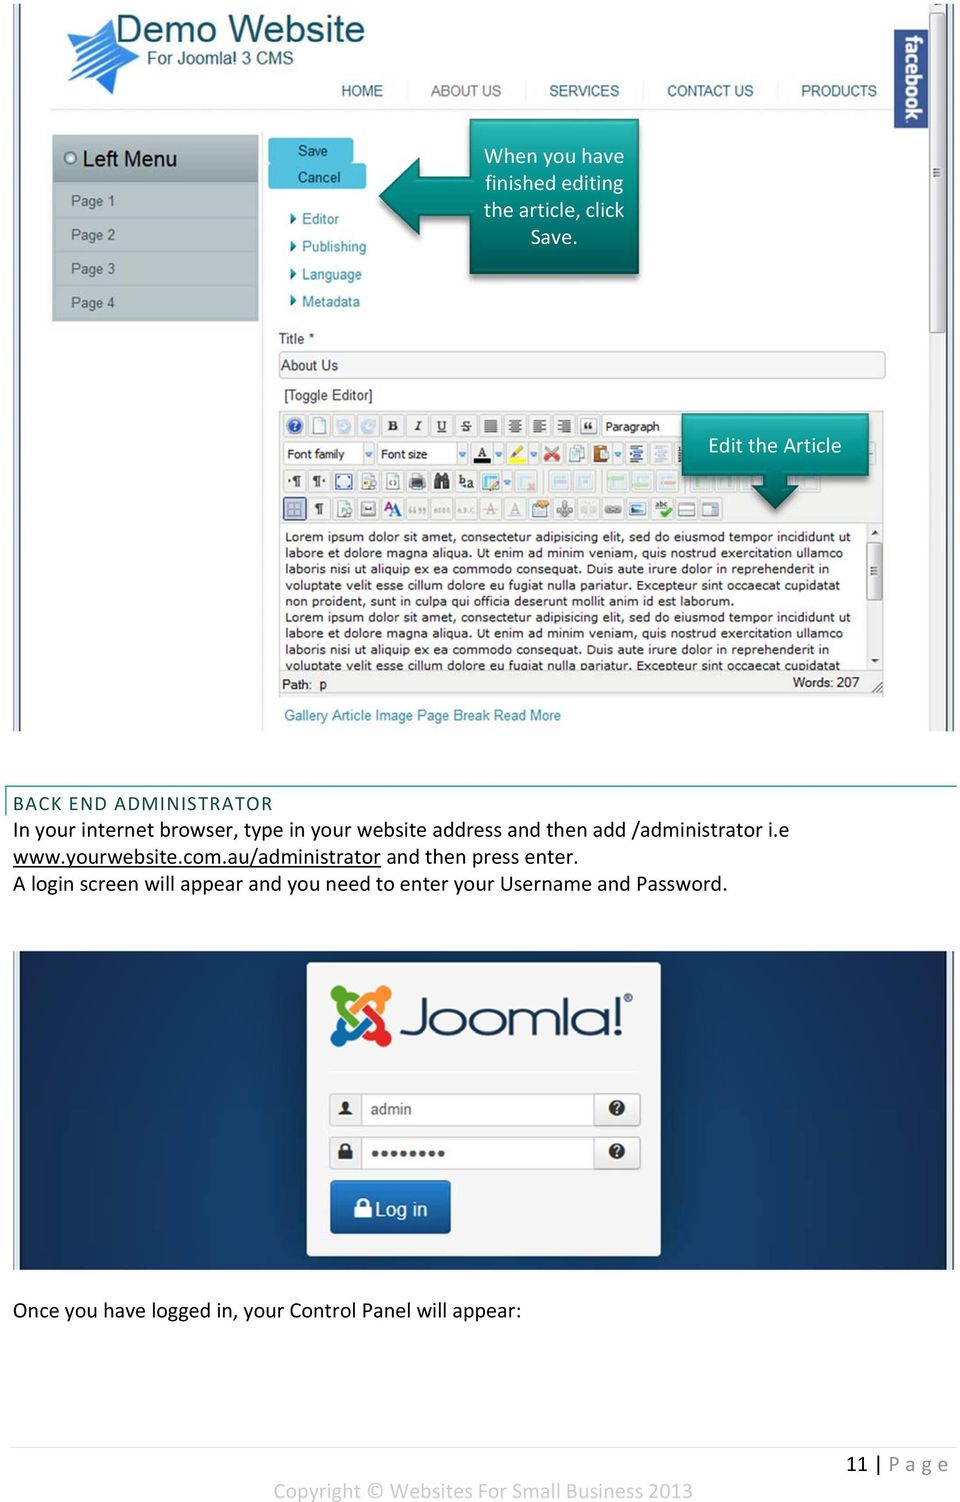 and then add /administrator i.e www.yourwebsite.com.au/administrator and then press enter.